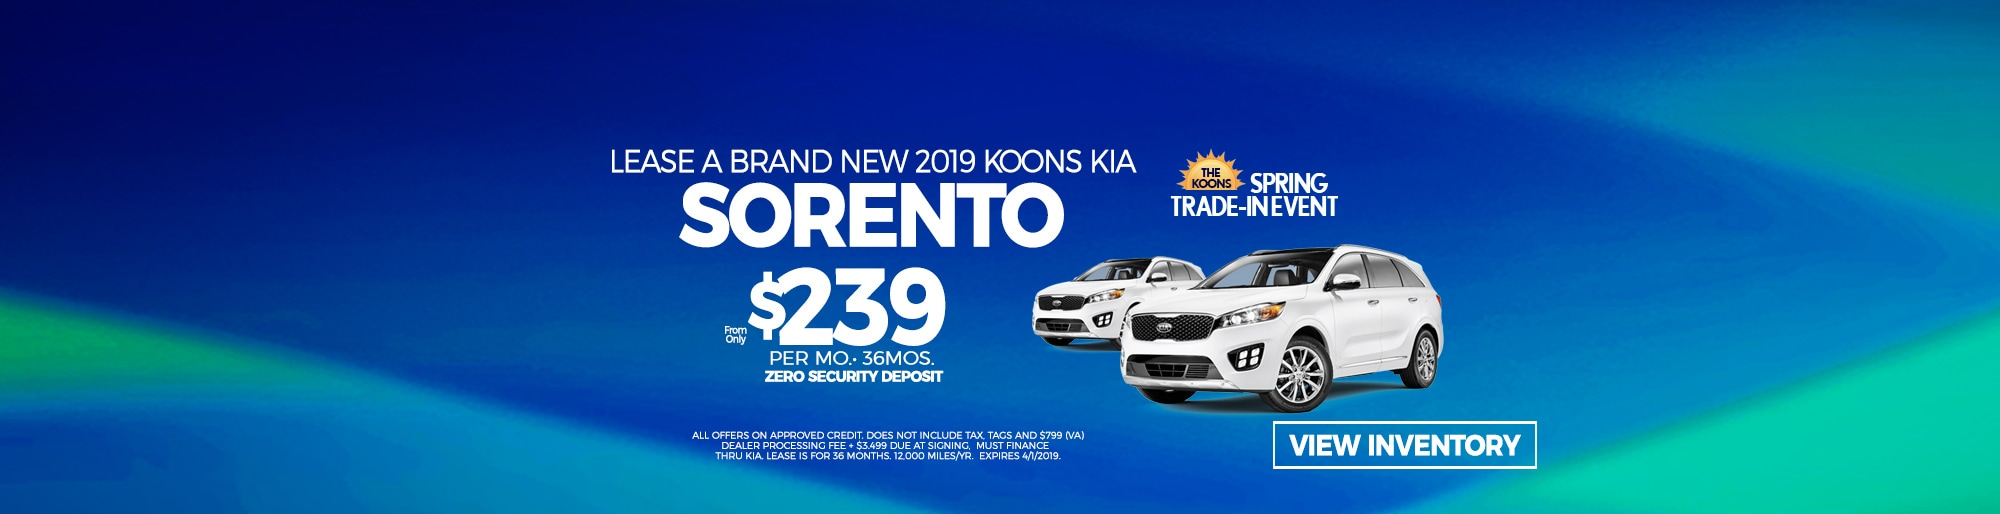 Eastern Shore Kia Koons Kia Of Woodbridge Kia Dealership In Prince William County